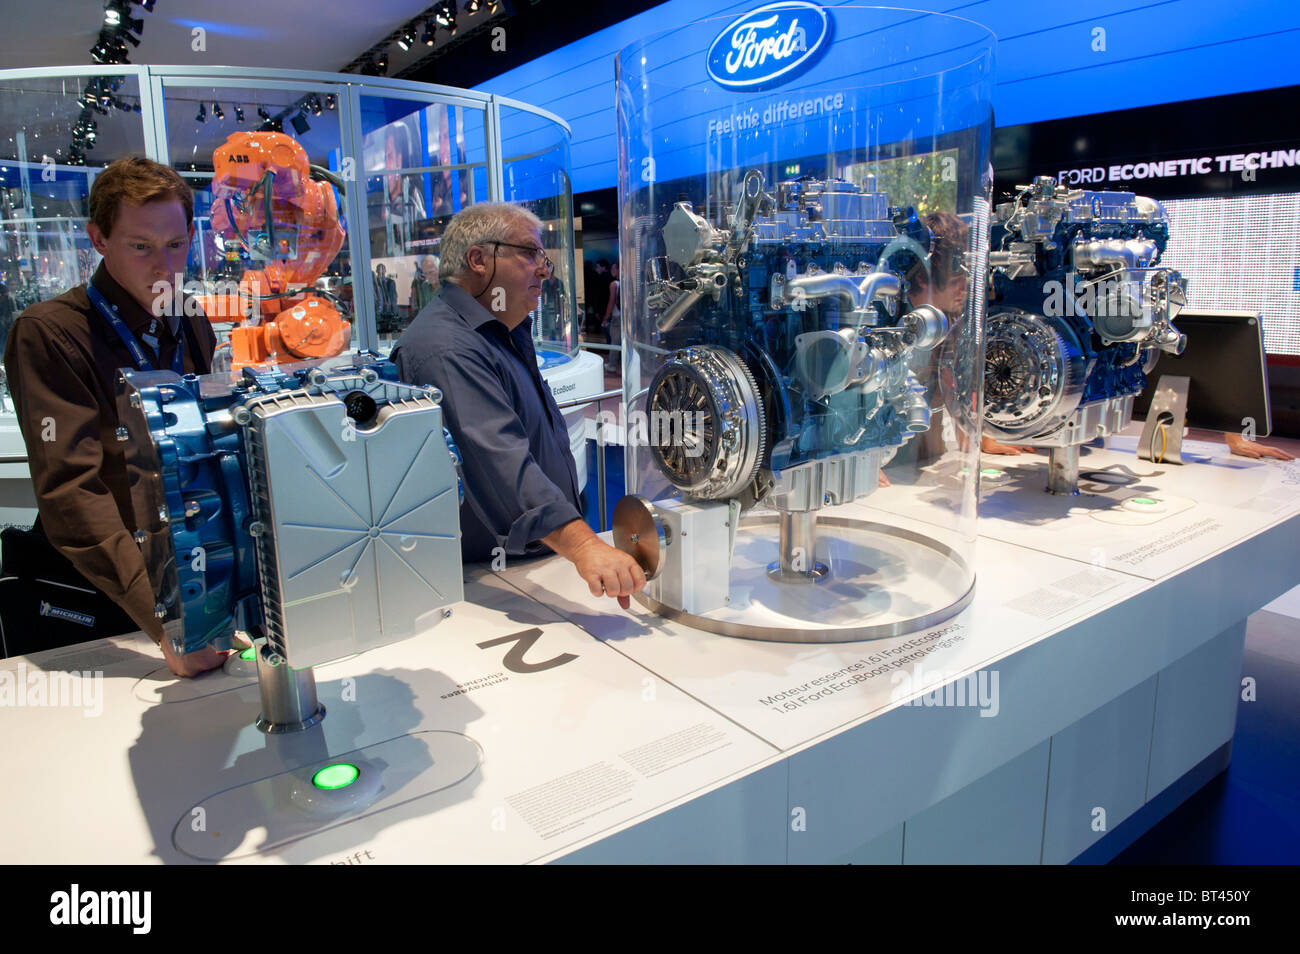 New Ford low emission engines on display at Paris Motor Show 2010 - Stock Image